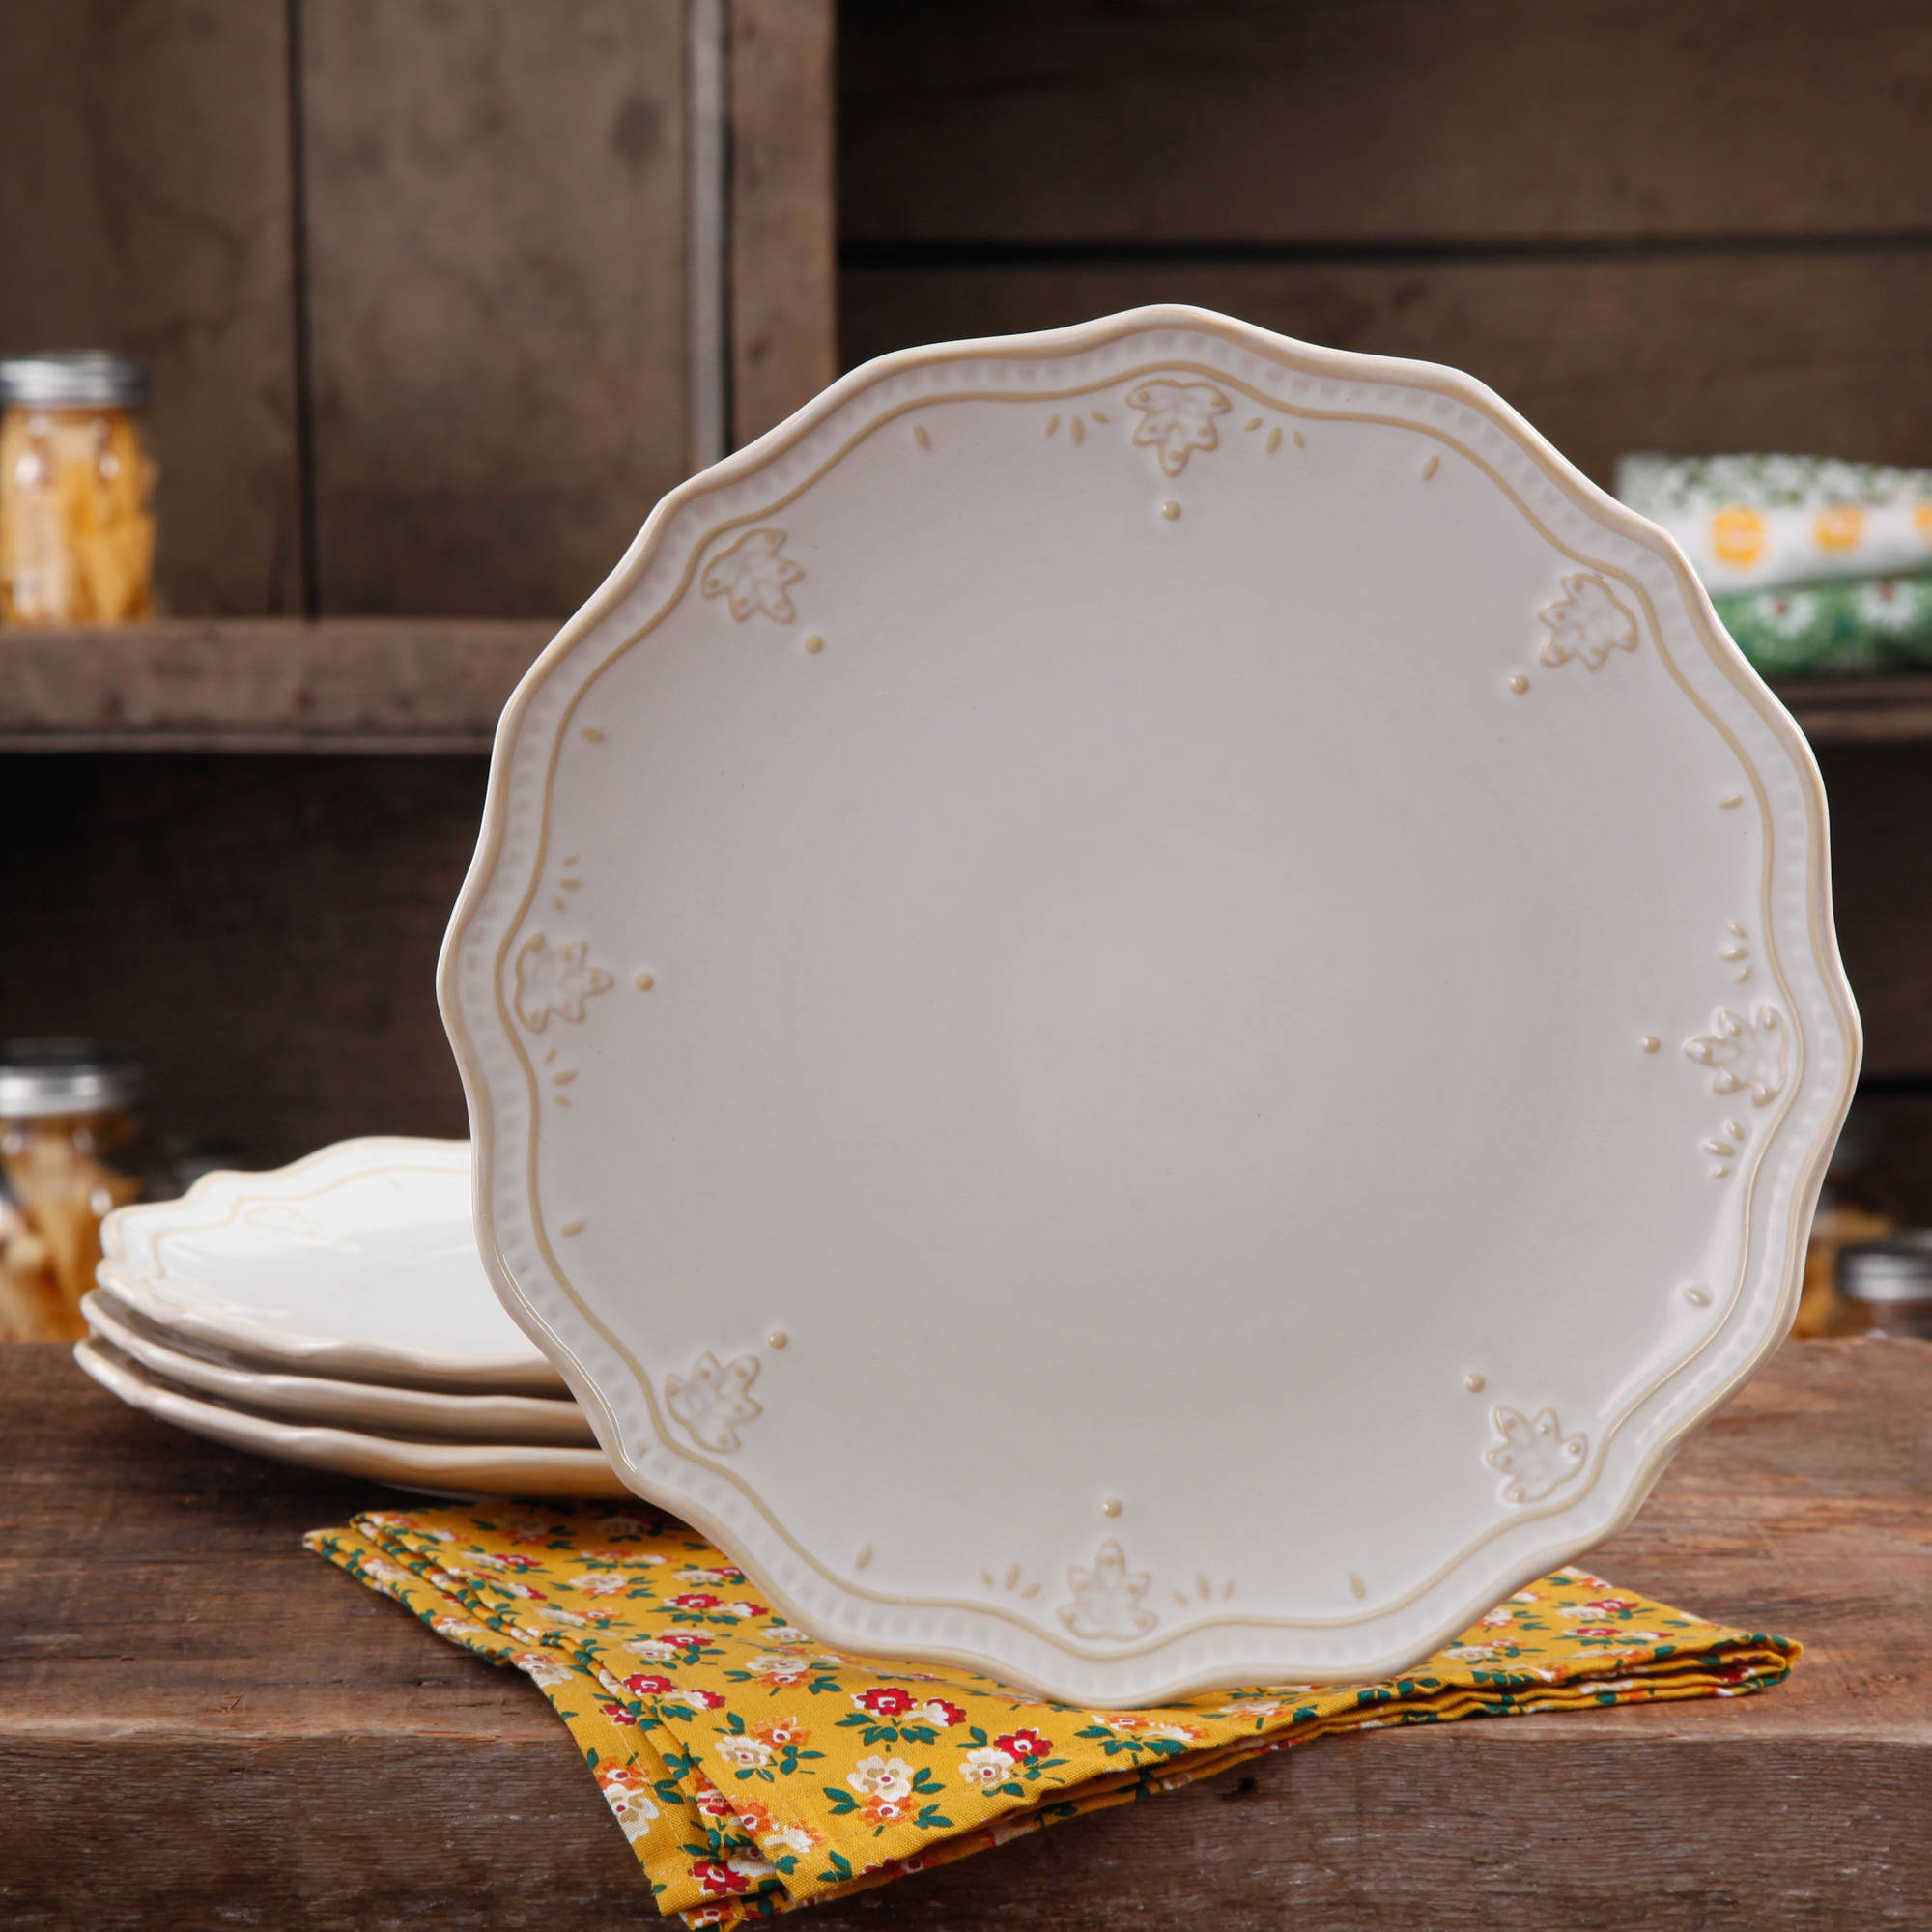 The Pioneer Woman Farmhouse Lace Dinner Plate Set, 4 Pack   Walmart.com